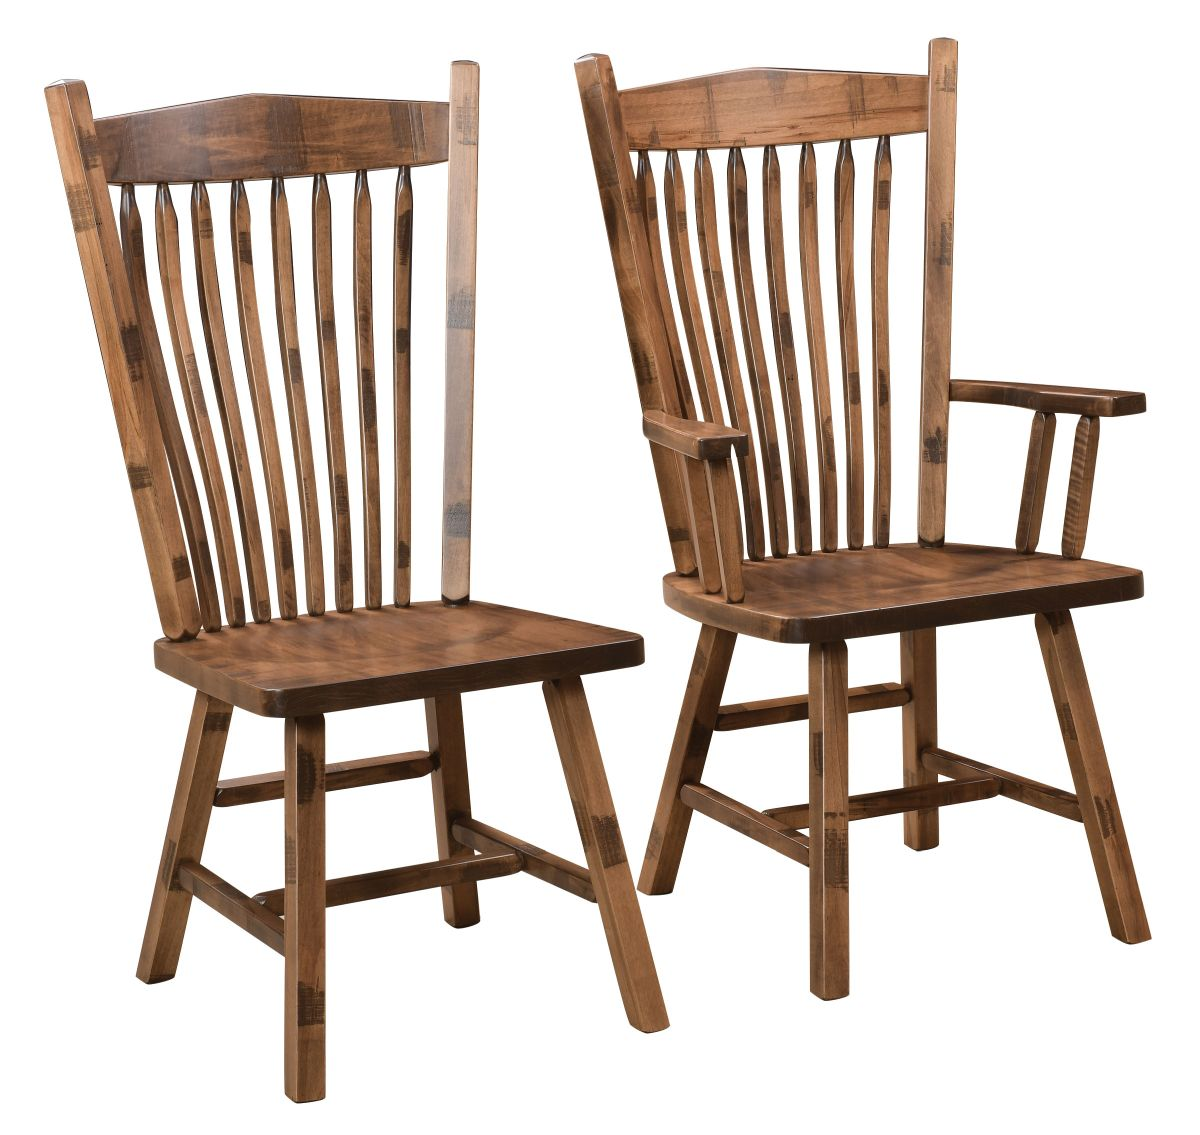 Post-Mission-Chairs